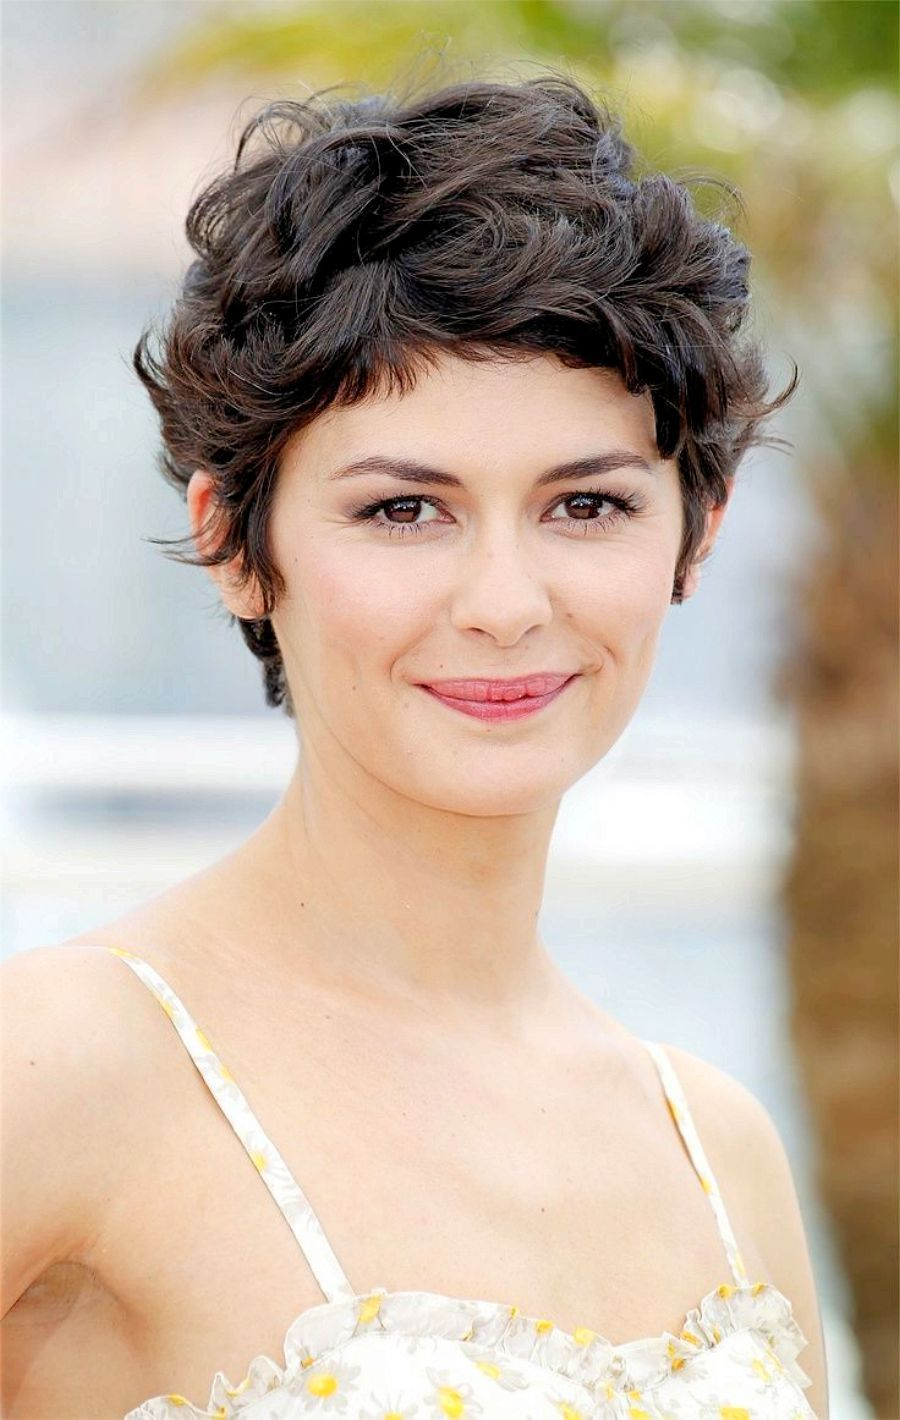 35 Charming Curly Pixie Hairstyles For Women Thick Hair Styles Short Curly Hair Curly Pixie Haircuts